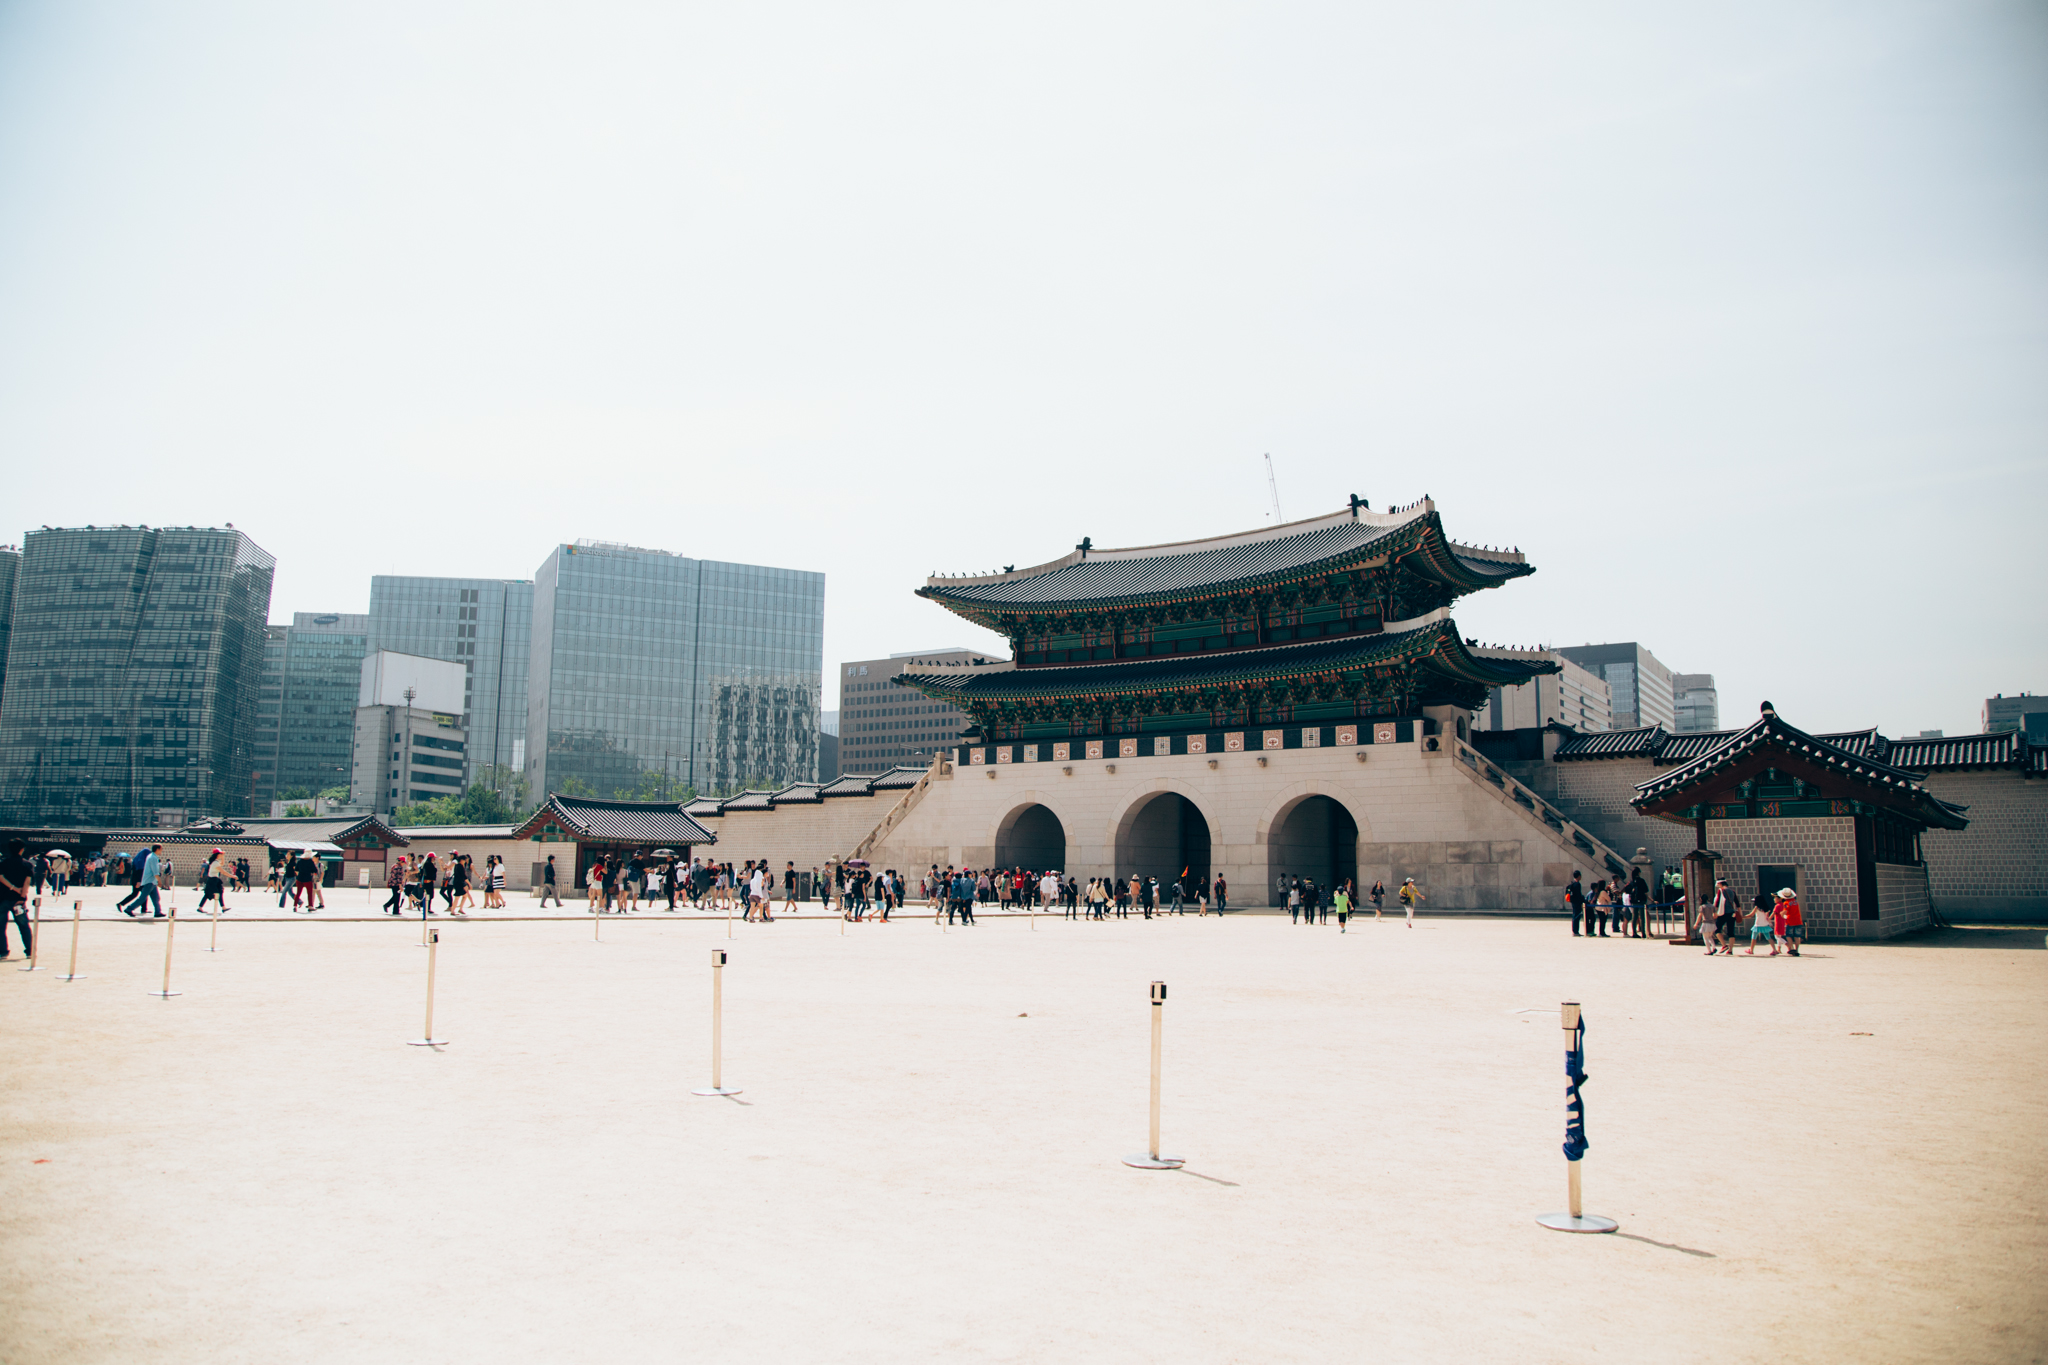 Gyeongbokgung Palace was the first palace ever to be built during the Joseon Period. For 516 years, 27 kings ruled Korea. That's some good genes!